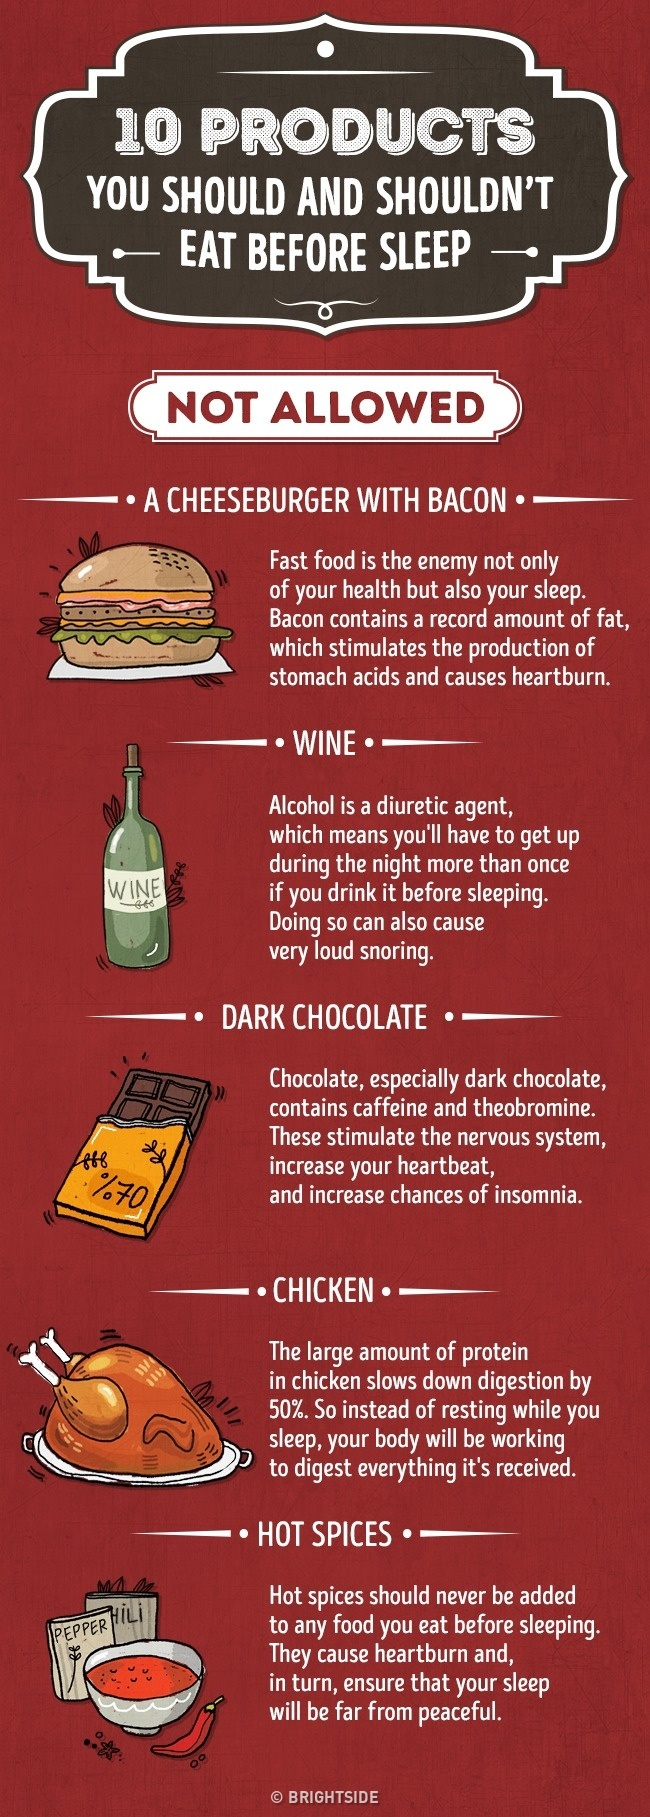 Food you should and should not eat before sleep